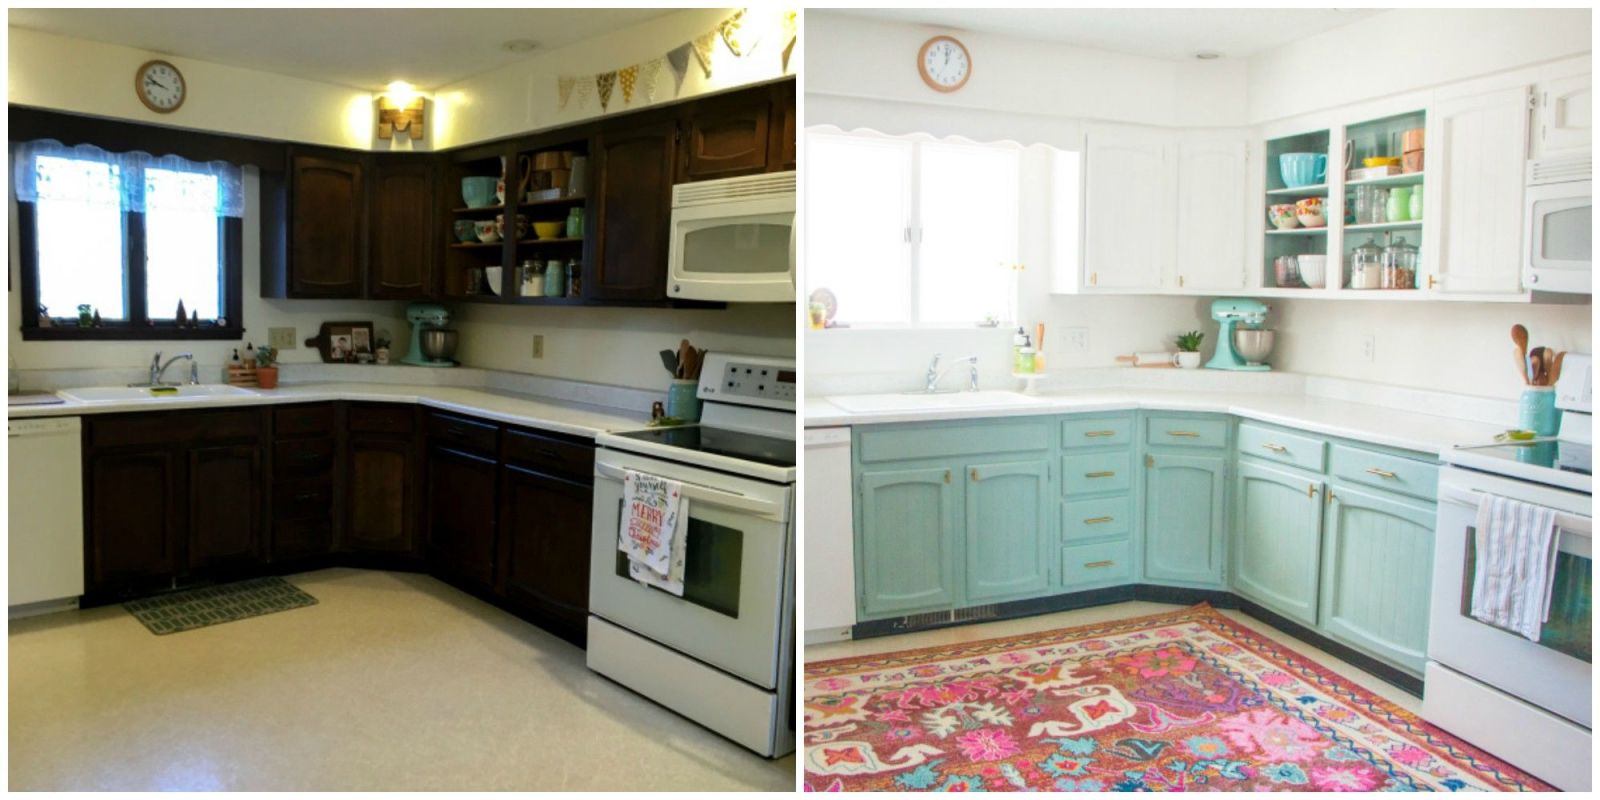 Home Renovation Ideas Before And After Kitchen Remodel Ideas